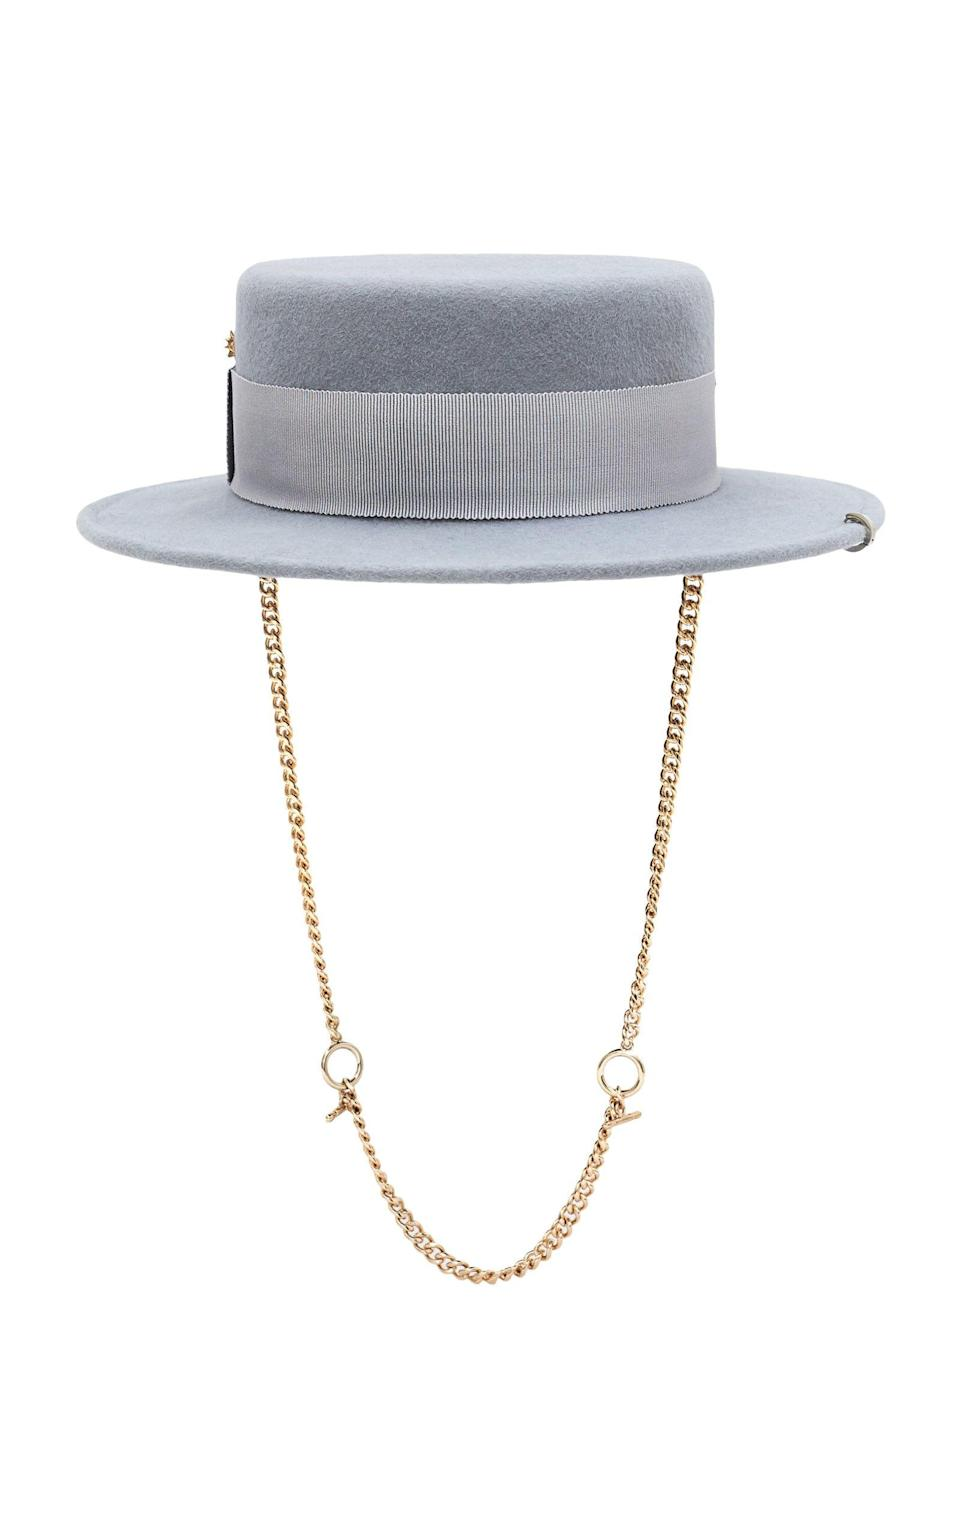 """<p><strong>Ruslan Baginskiy Hats</strong></p><p>modaoperandi.com</p><p><strong>$380.00</strong></p><p><a href=""""https://go.redirectingat.com?id=74968X1596630&url=https%3A%2F%2Fwww.modaoperandi.com%2Fruslan-baginskiy-hats-pf20%2Fpiercing-canotier-hat&sref=https%3A%2F%2Fwww.oprahmag.com%2Fstyle%2Fg33275493%2Ffall-hats-for-women%2F"""" rel=""""nofollow noopener"""" target=""""_blank"""" data-ylk=""""slk:Shop Now"""" class=""""link rapid-noclick-resp"""">Shop Now</a></p><p>It's a huge splurge, but this pale blue-grey hat from Ukrainian milliner Ruslan Baginskiy hits all the right style notes (""""chain details were all over the runways,"""" according to Nazzaro) and will have people asking where you got it for years to come. Think of it as a (big) investment piece.</p>"""